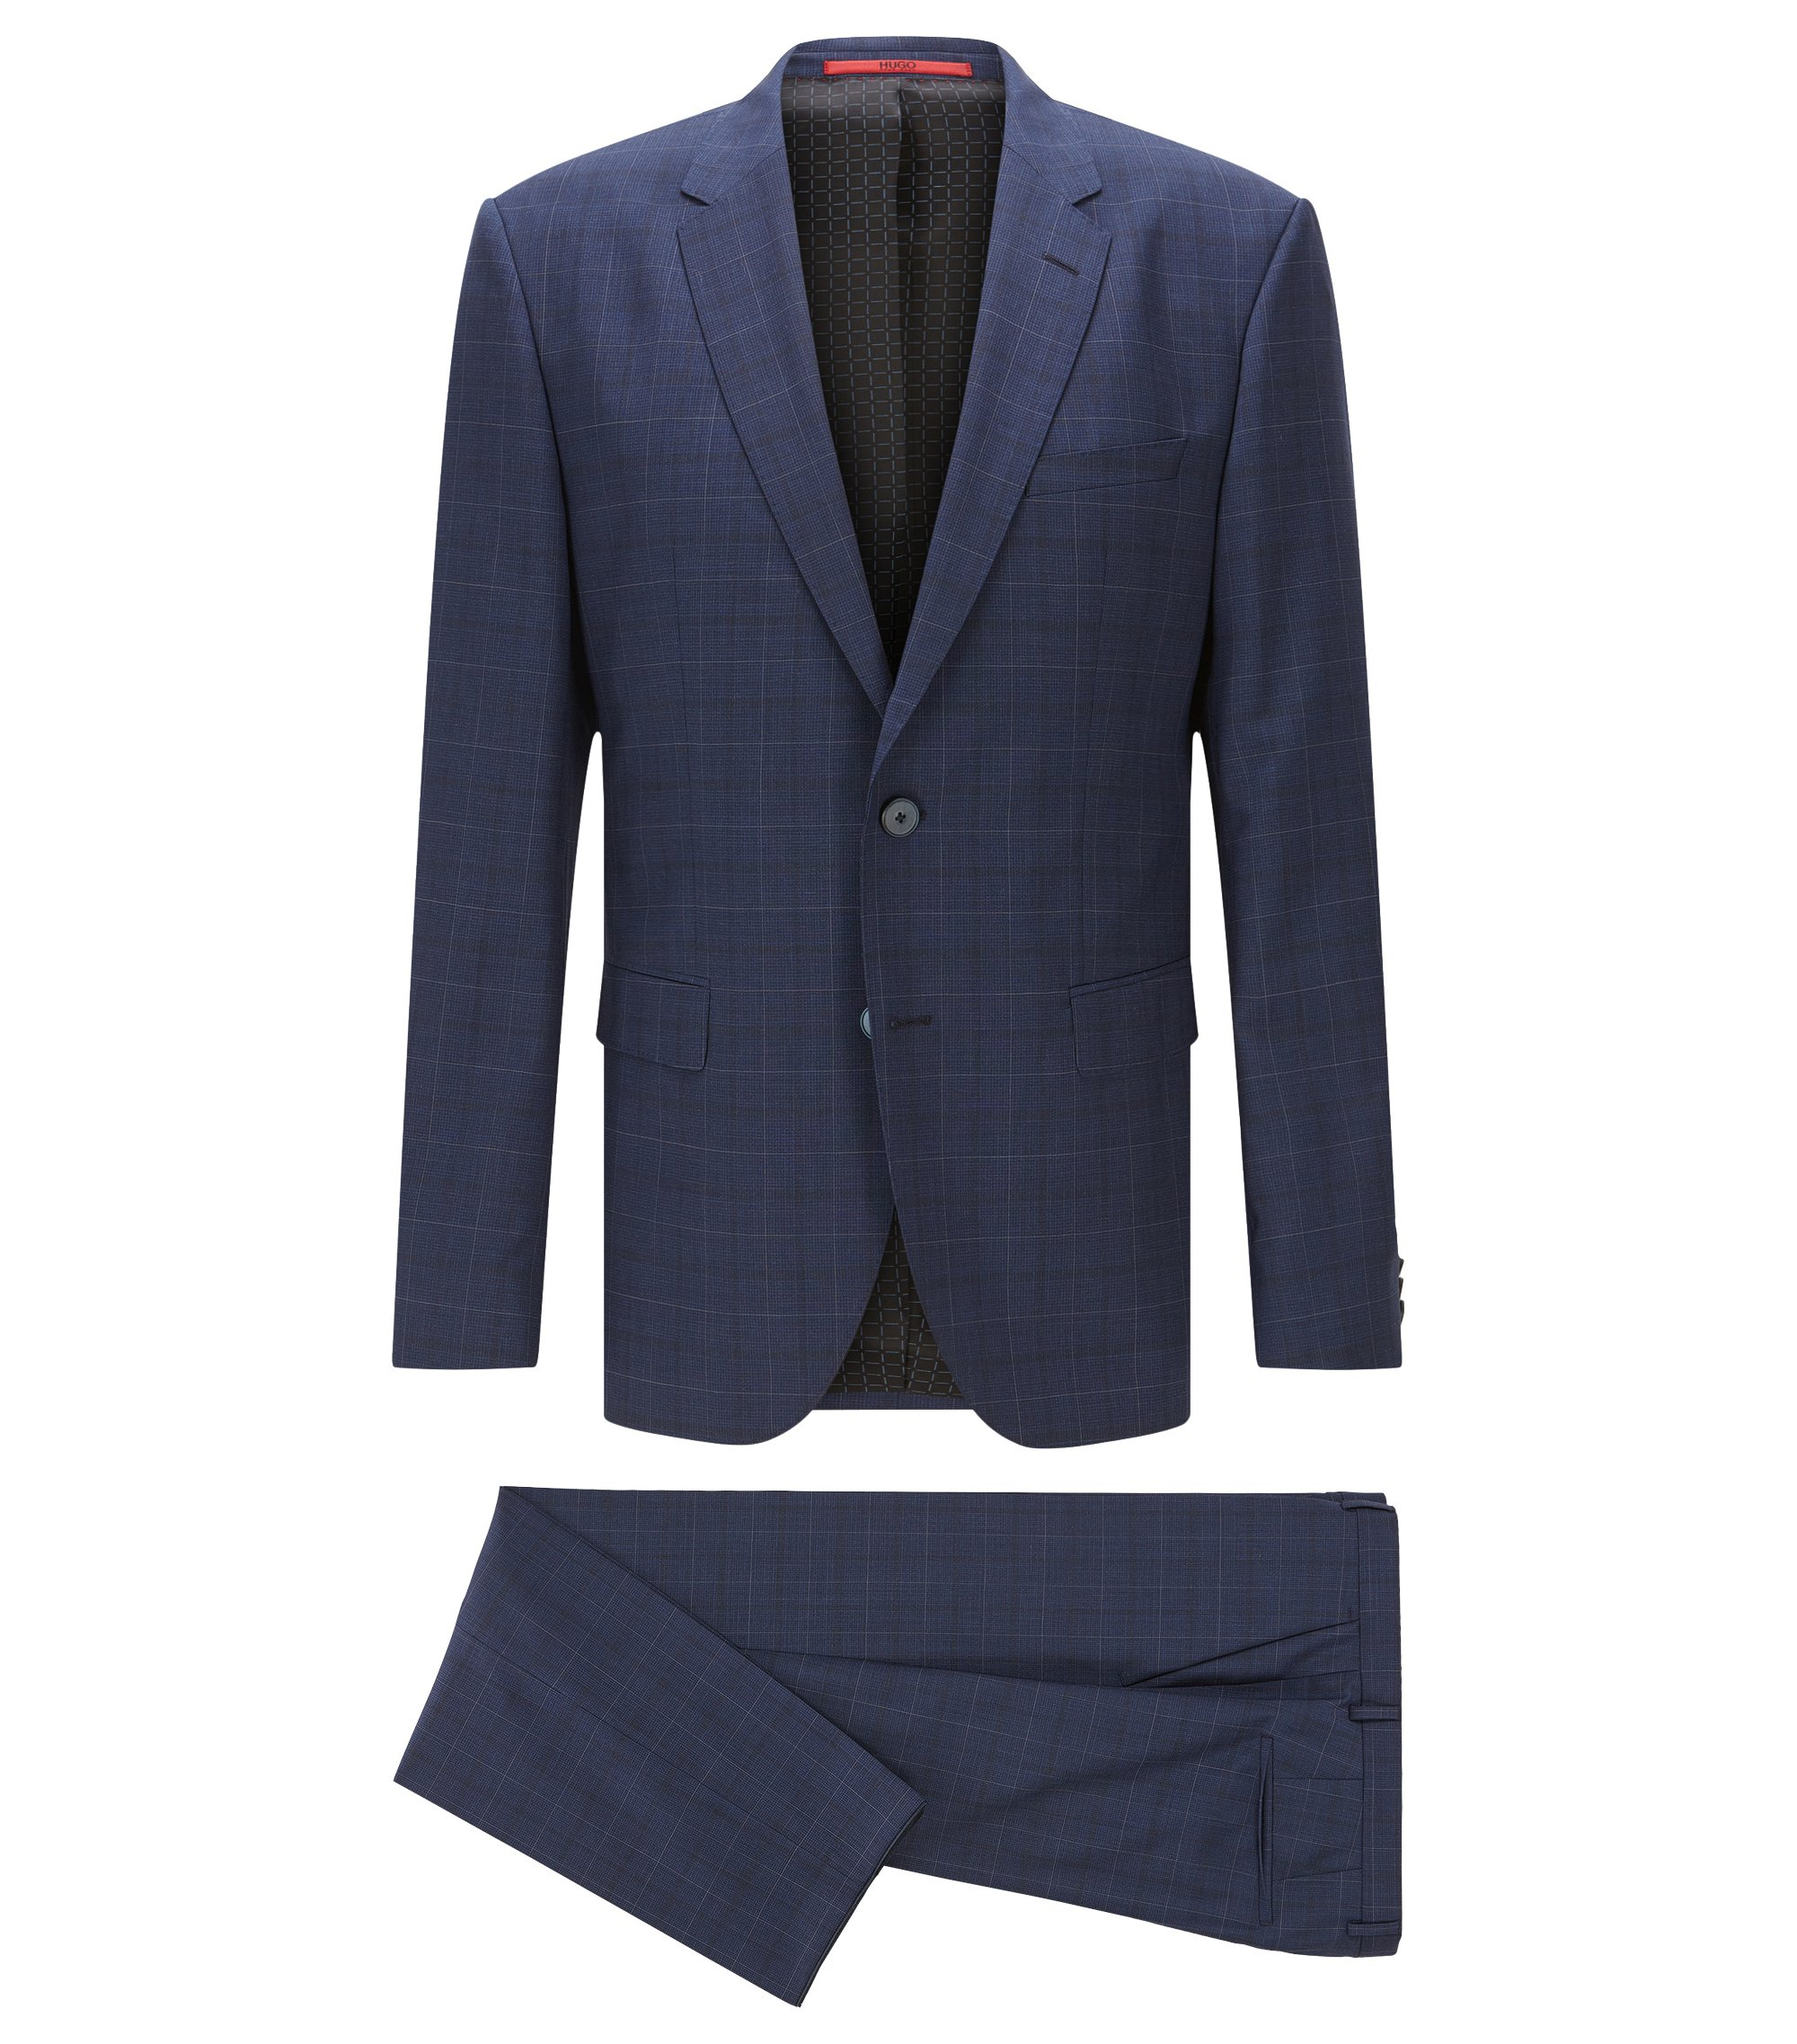 Italian Wool Suit, Regular Fit | C-Jeys/C-Shaft, Dark Blue